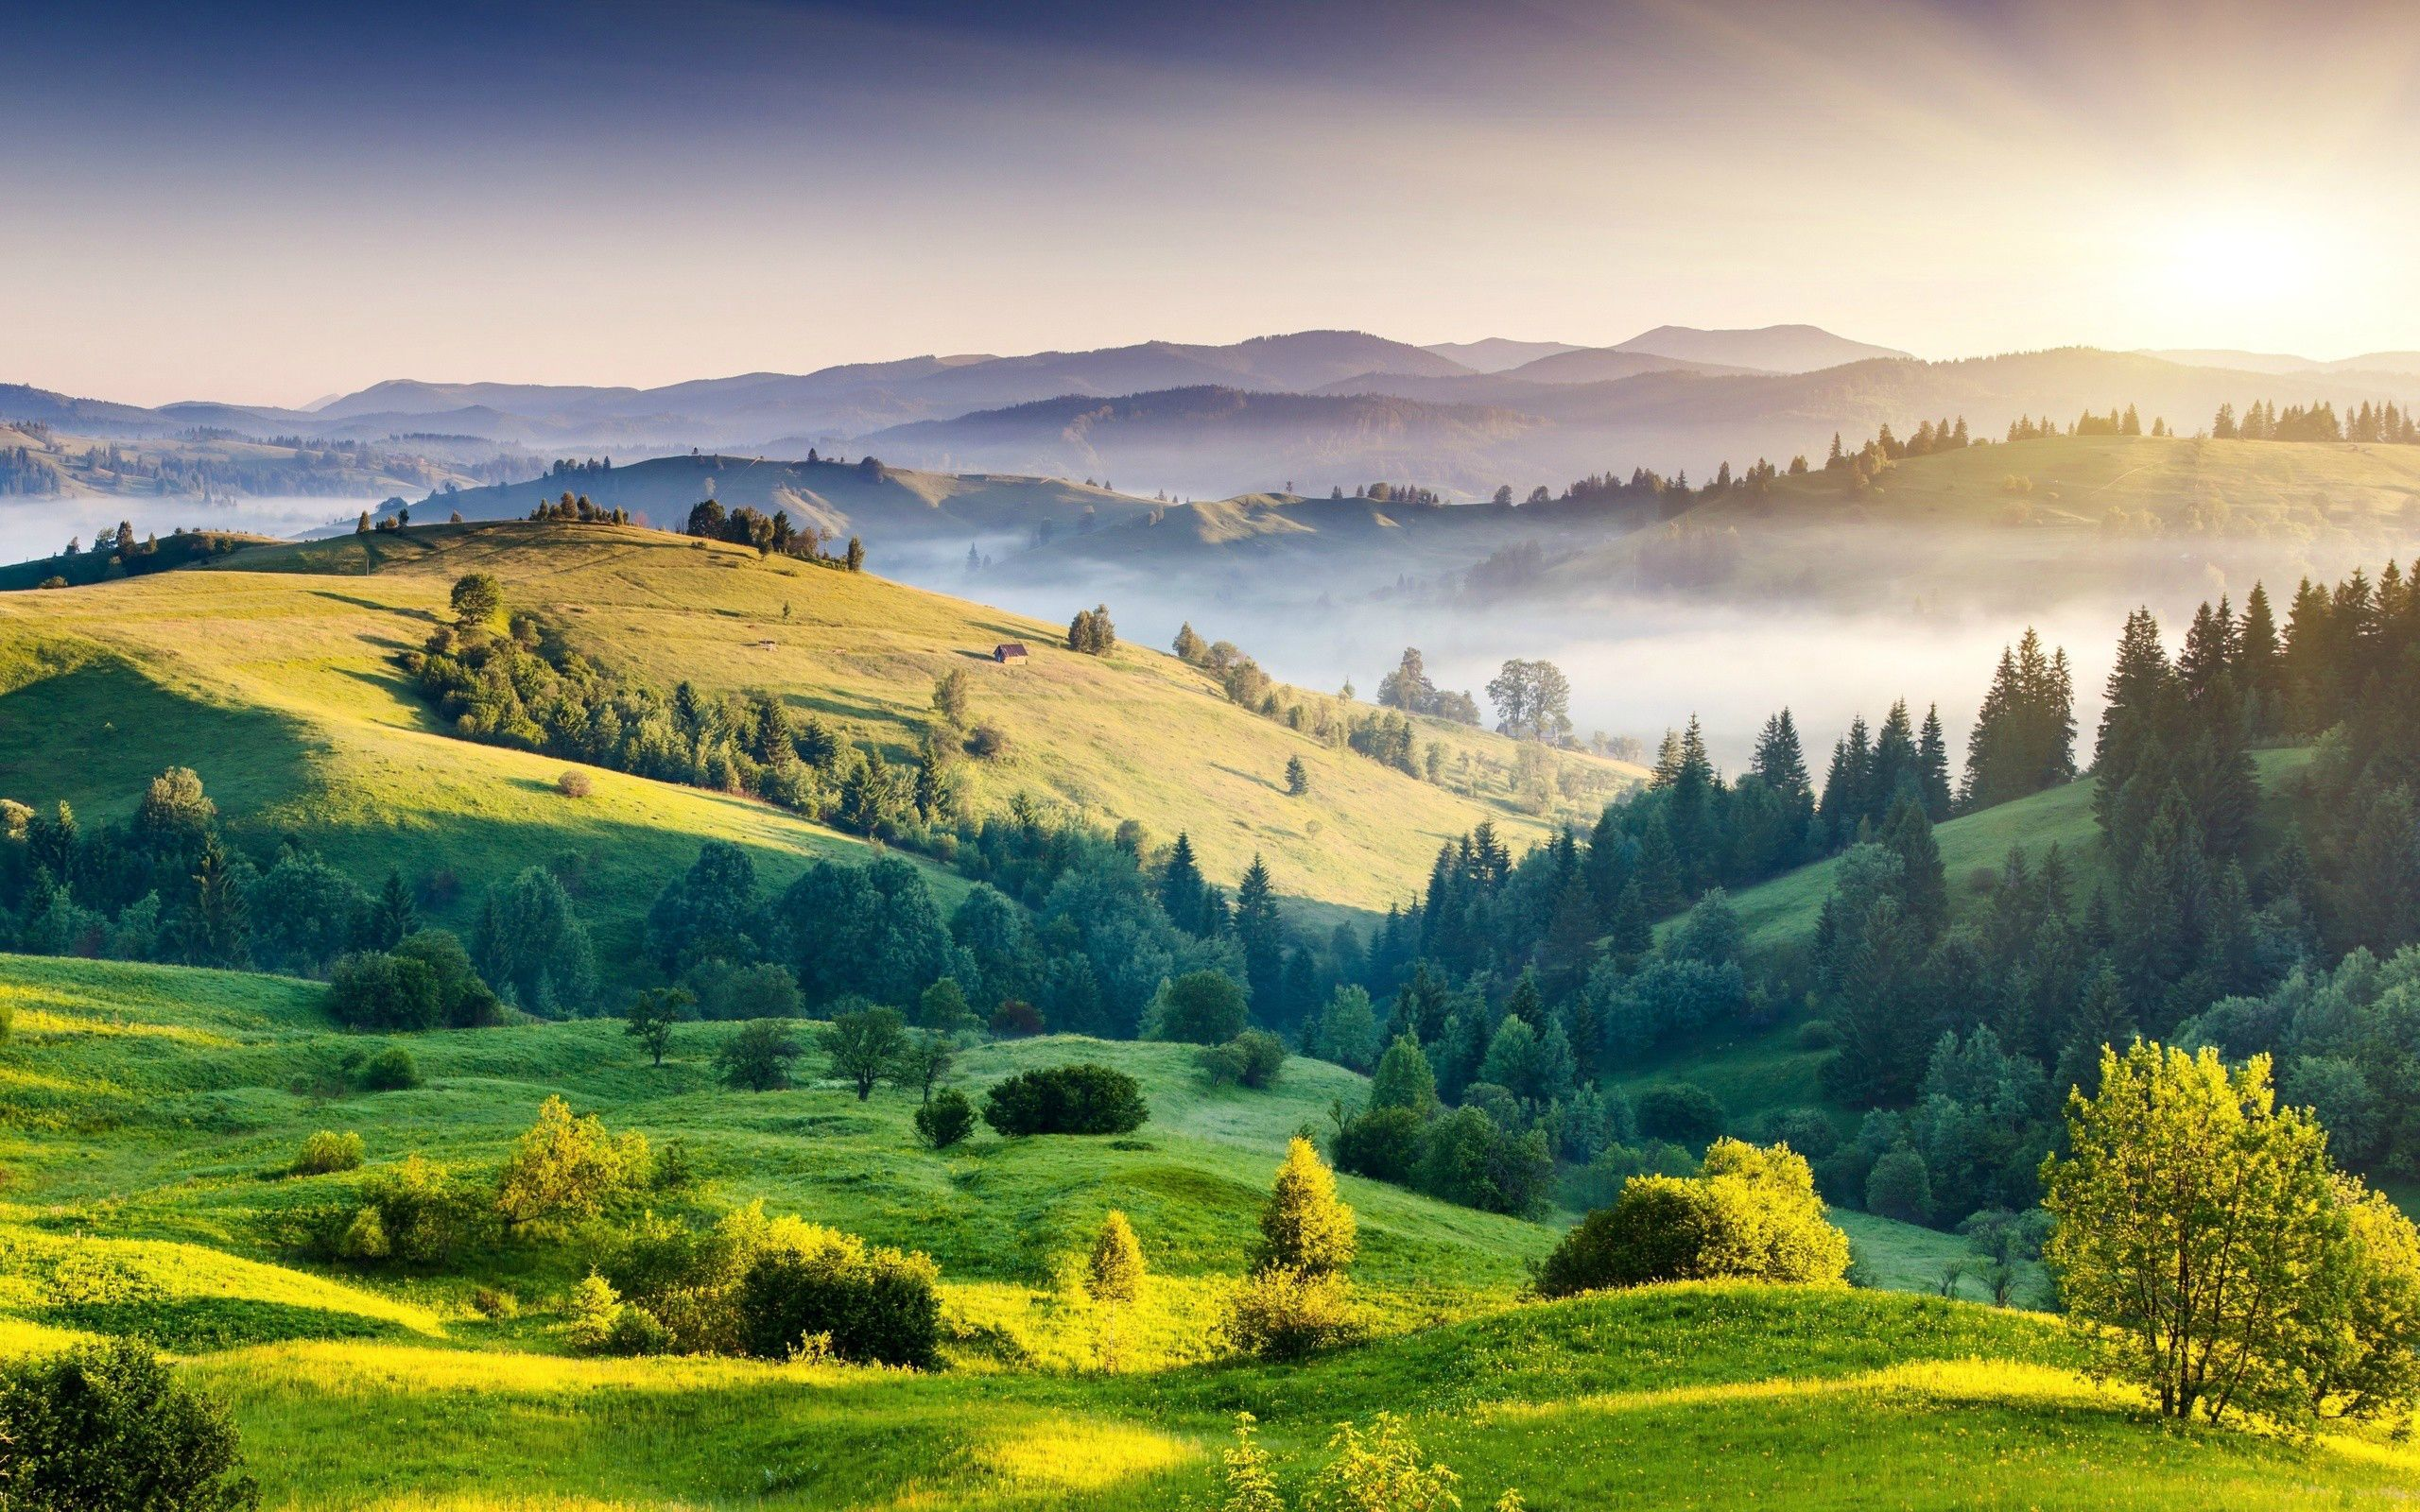 Wallpapers Tuscany Italia Beautiful Nature In Italy Hd Pics Sunrise Landscape Landscape Landscape Wallpaper